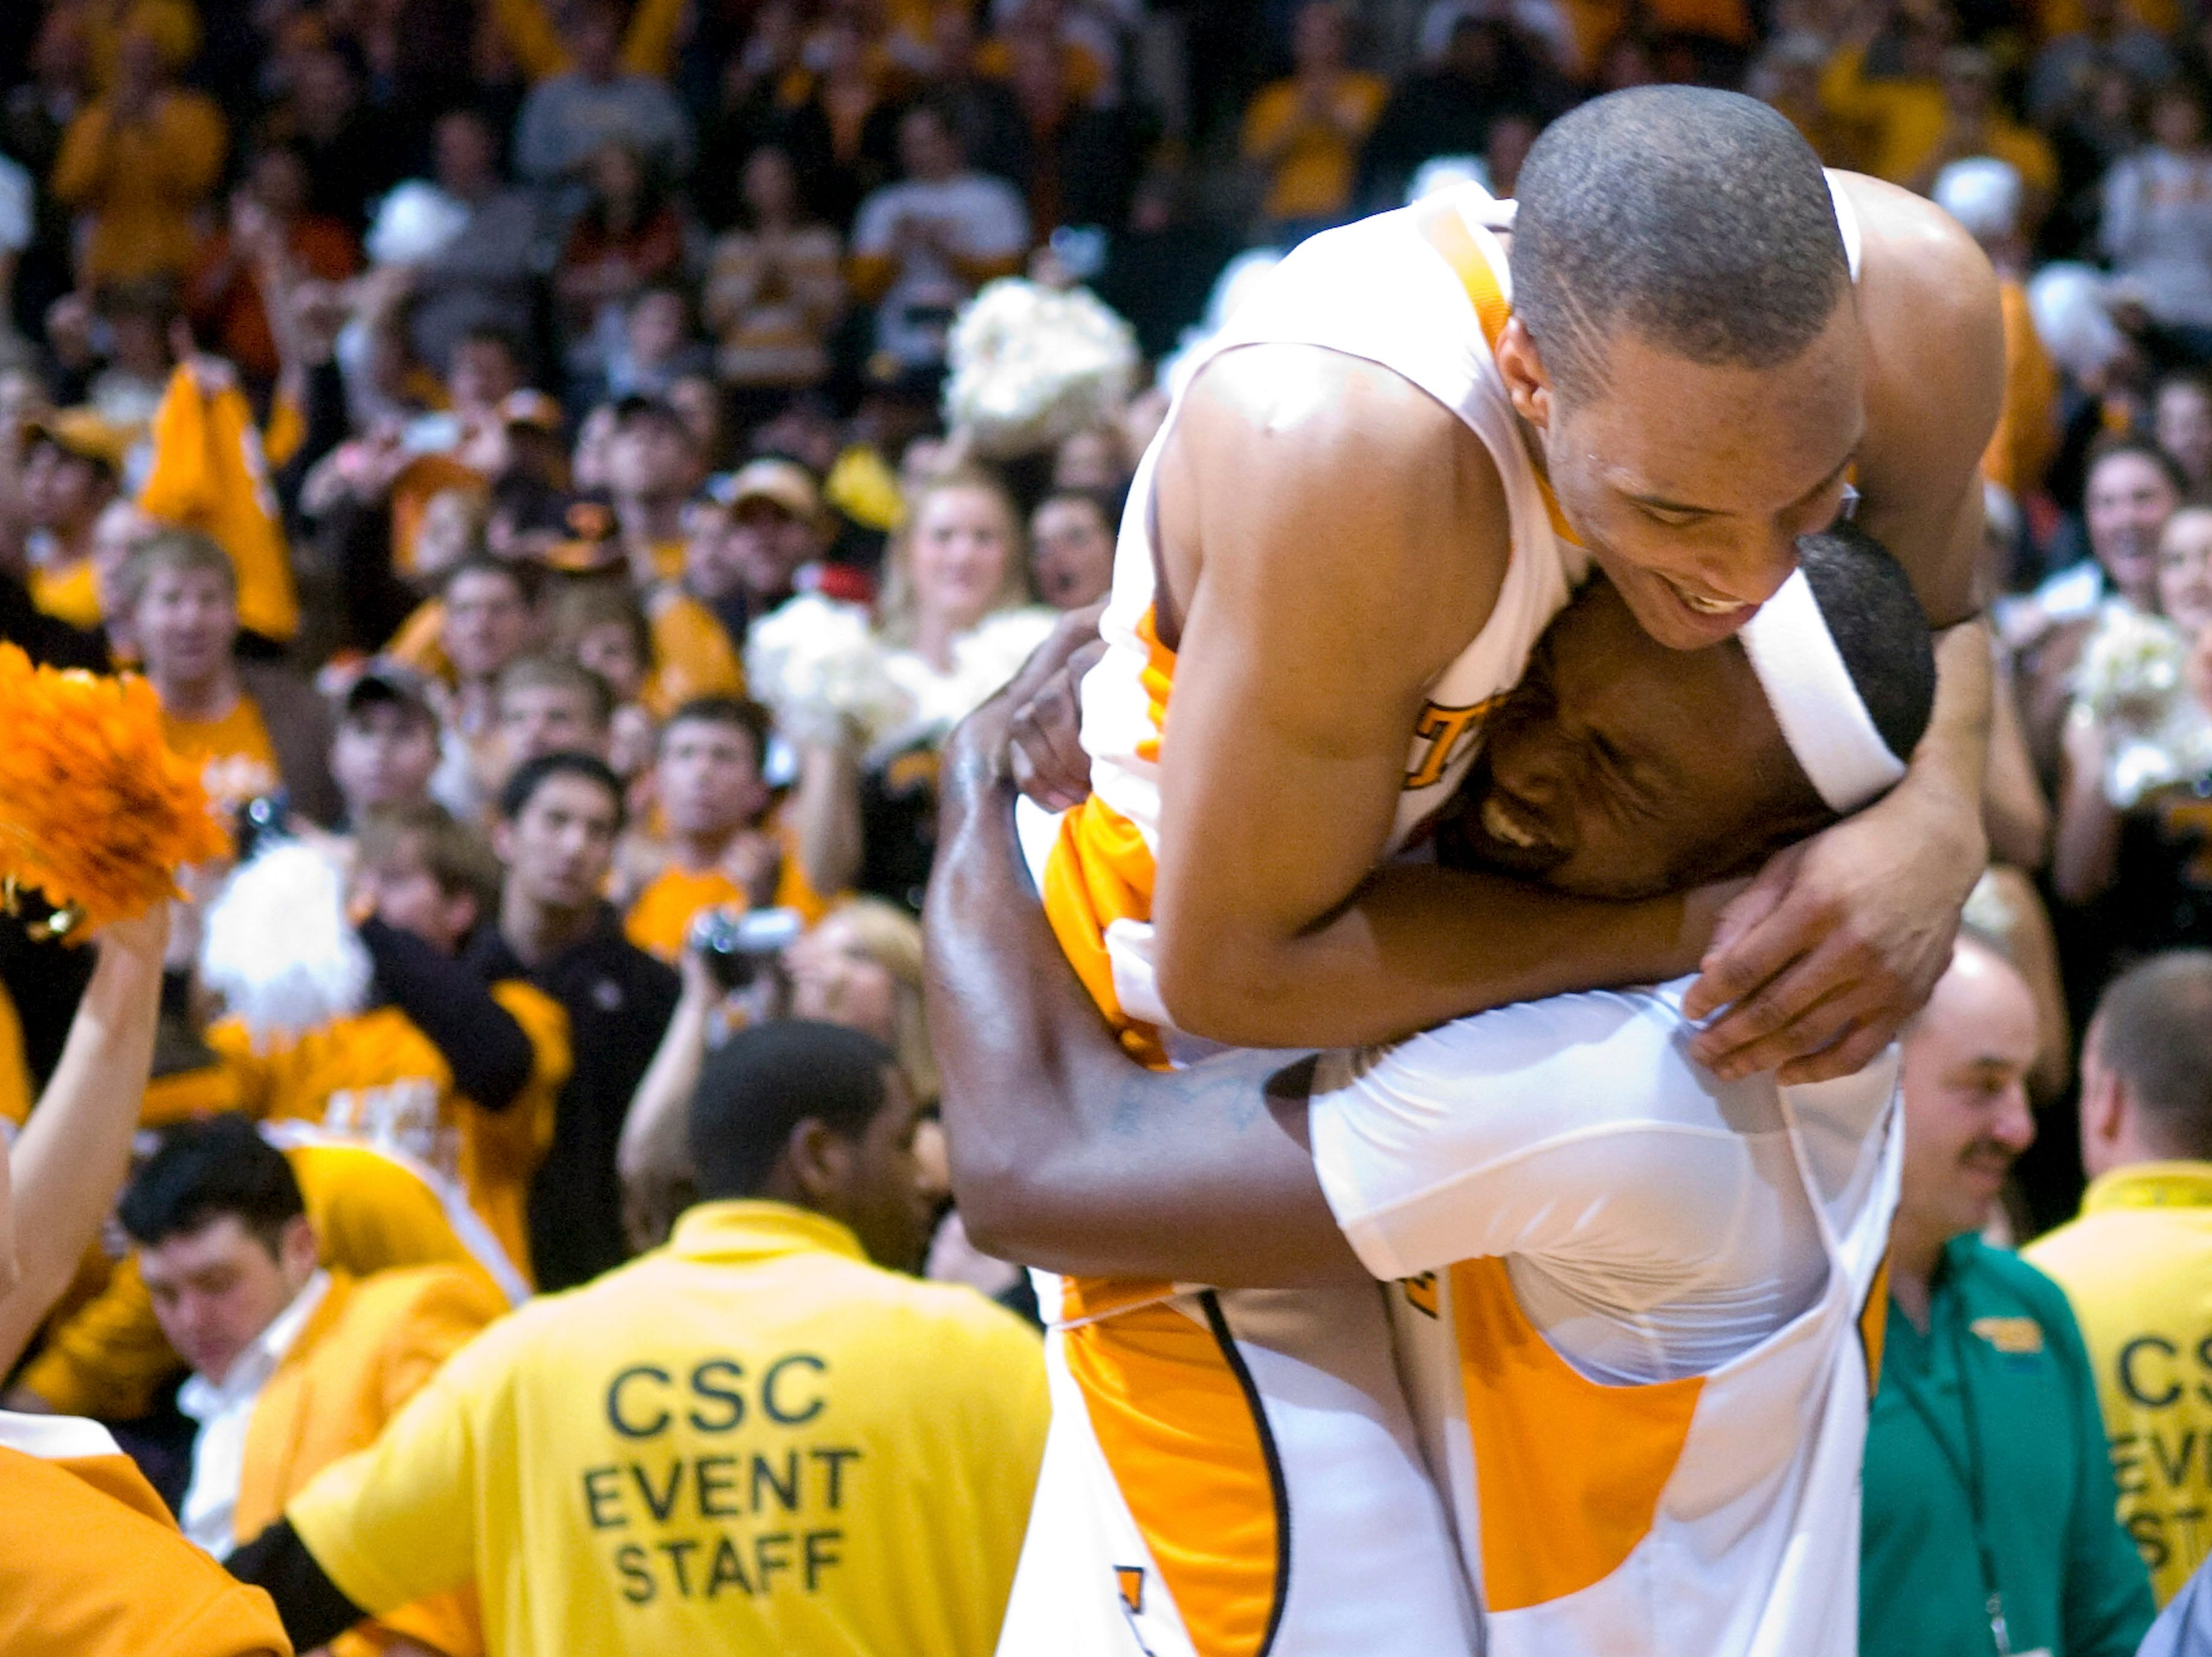 Tennessee's J.P. Prince, top, and Wayne Chism celebrate Tennessee's 76-68 win over Kansas in an NCAA college basketball game at Thompson-Boling Arena on Sunday, Jan. 10, 2010, in Knoxville, Tenn.